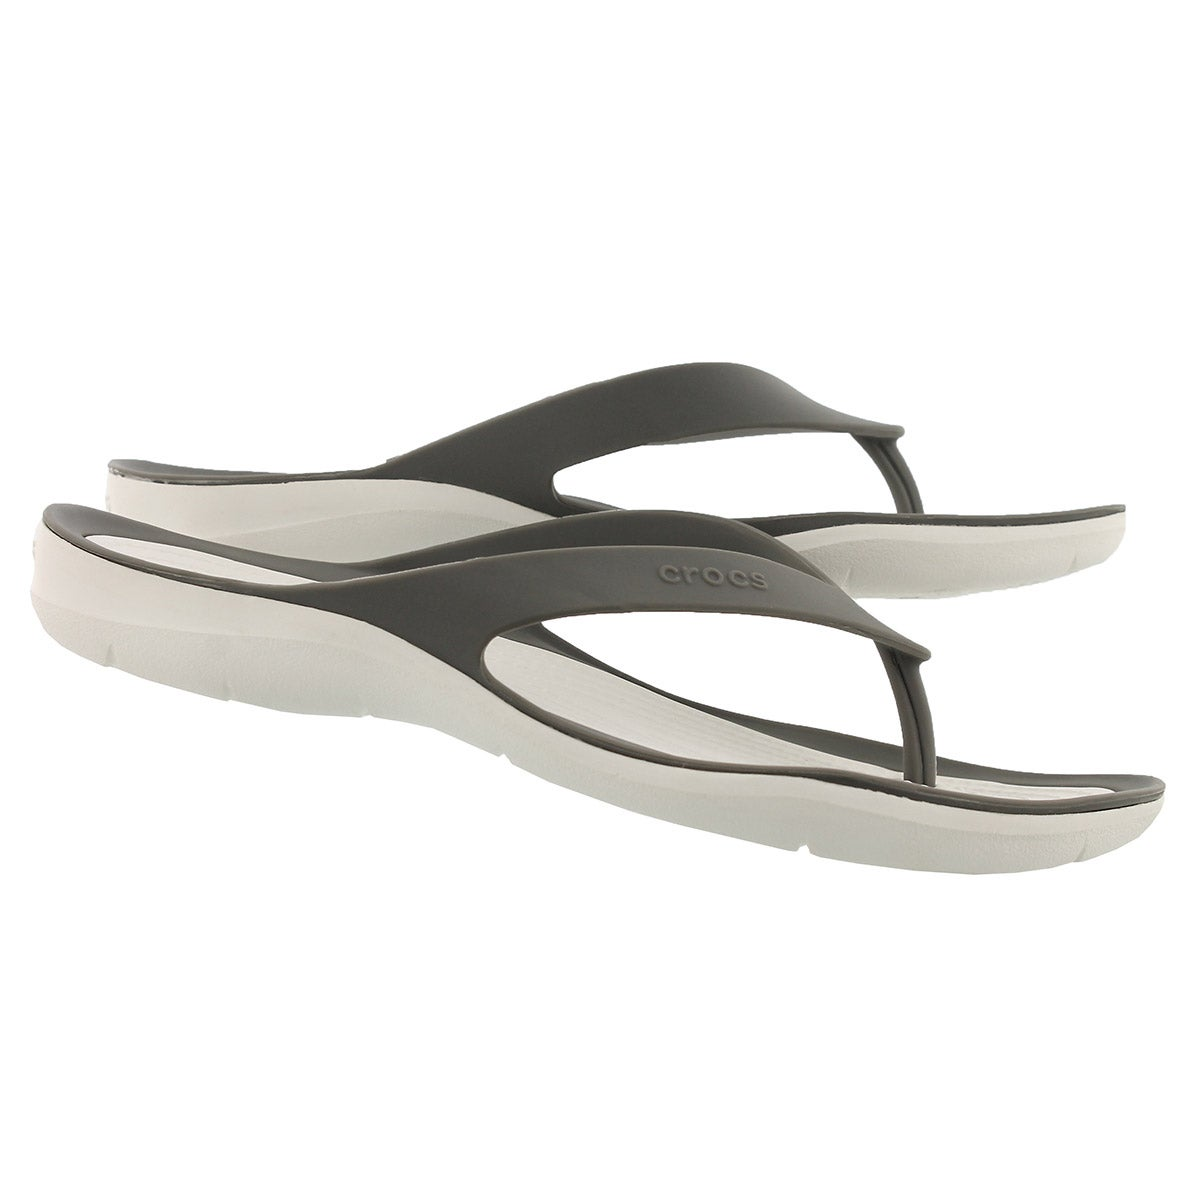 Lds Swiftwater Flip smk/wht thong sndl